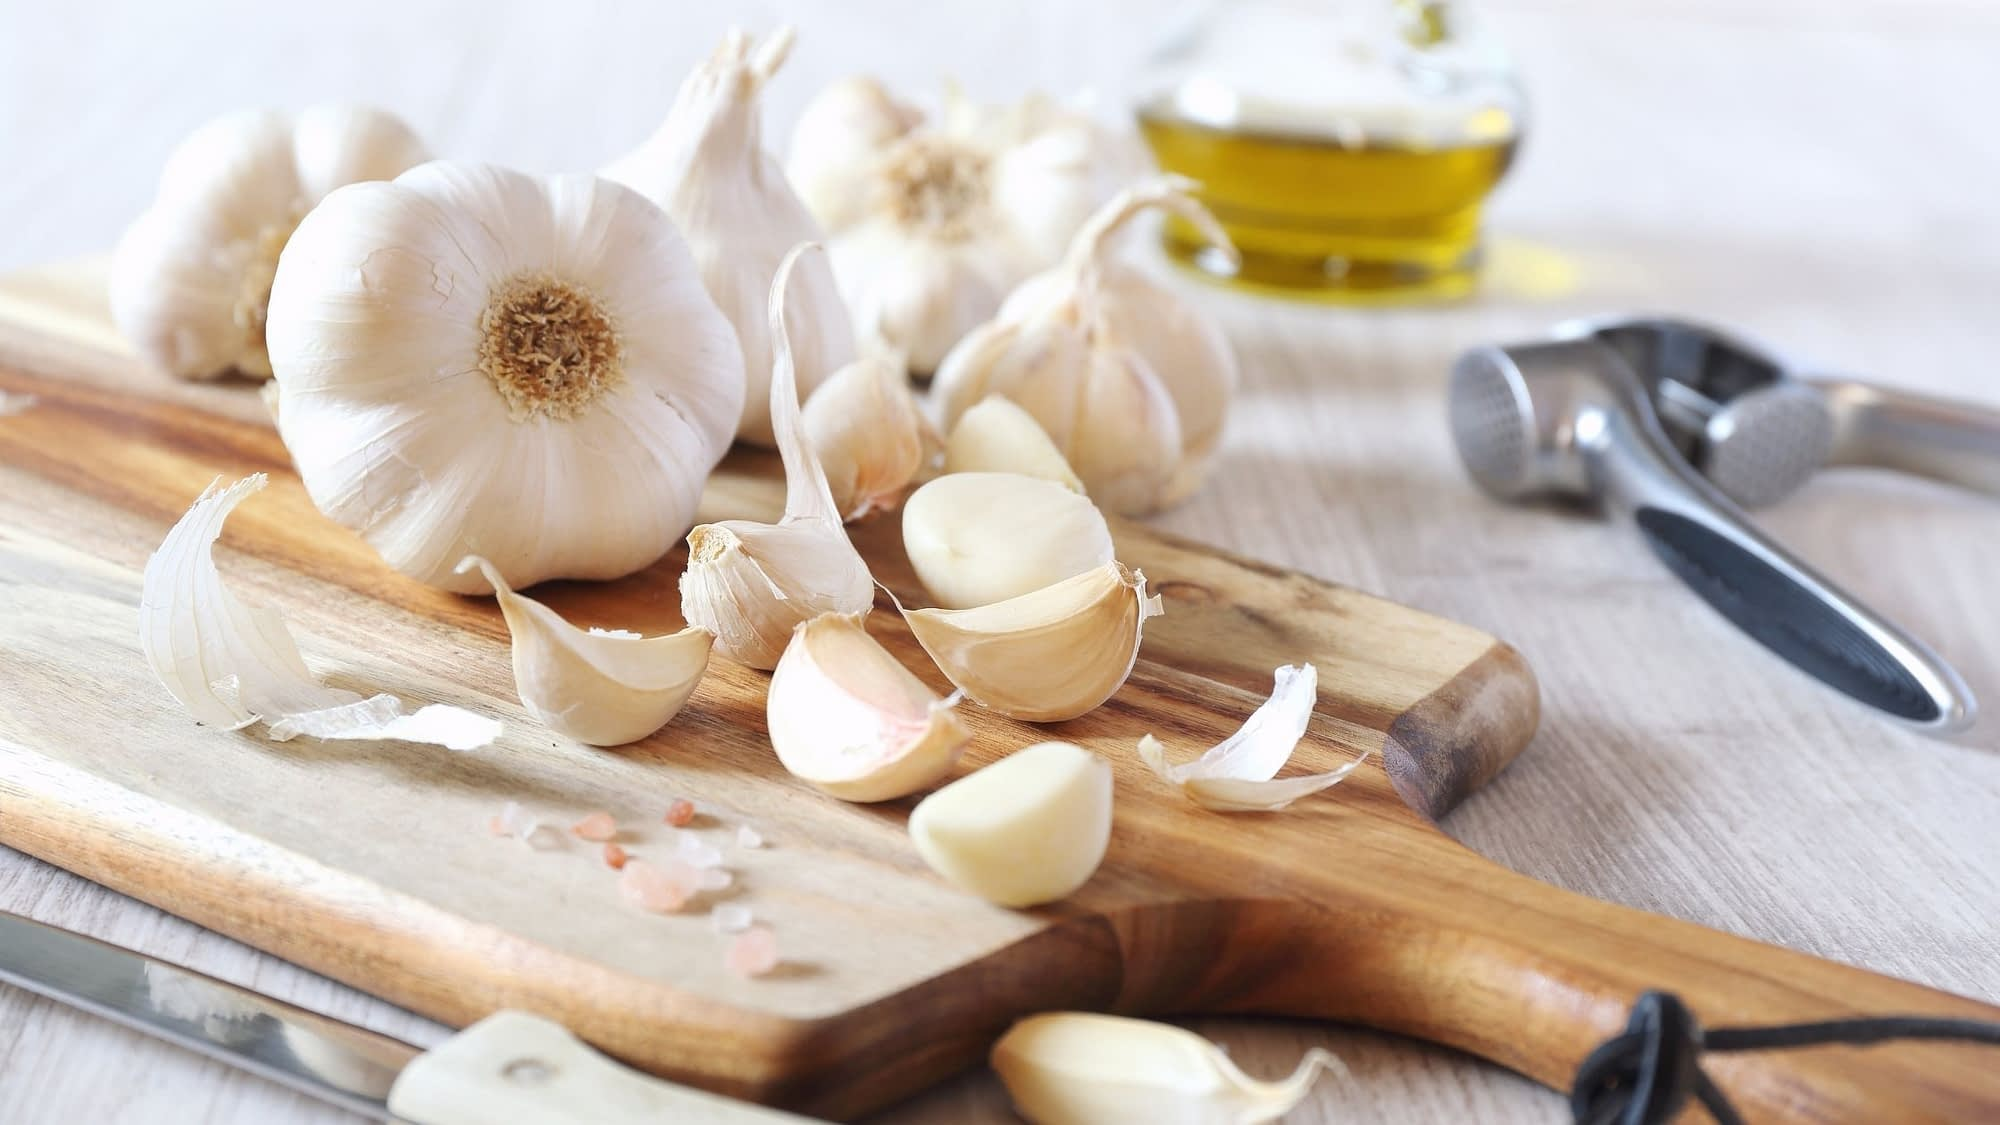 Garlic for fish